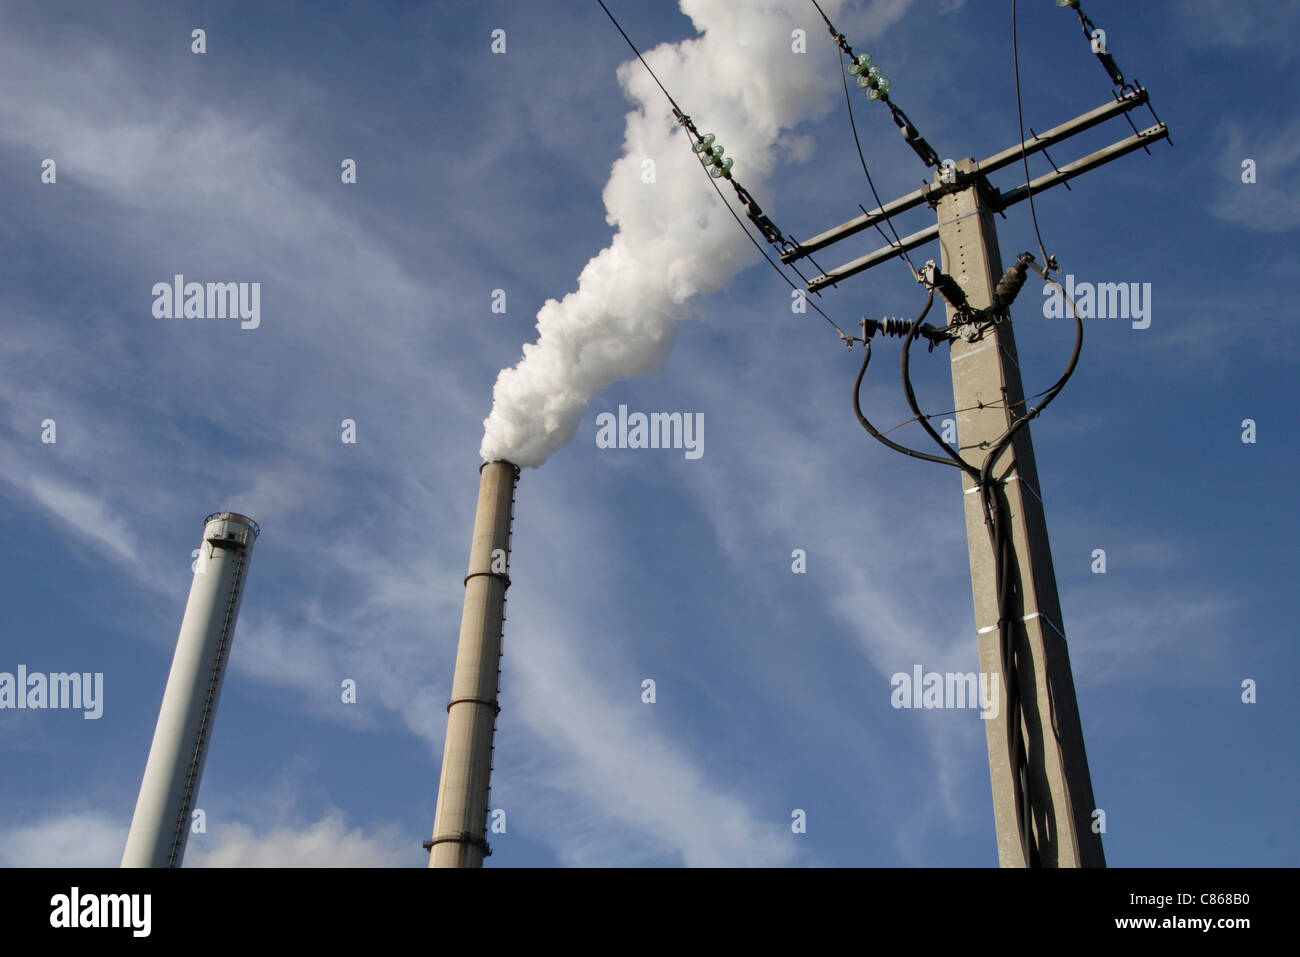 Electric post and smokestack against sky - Stock Image